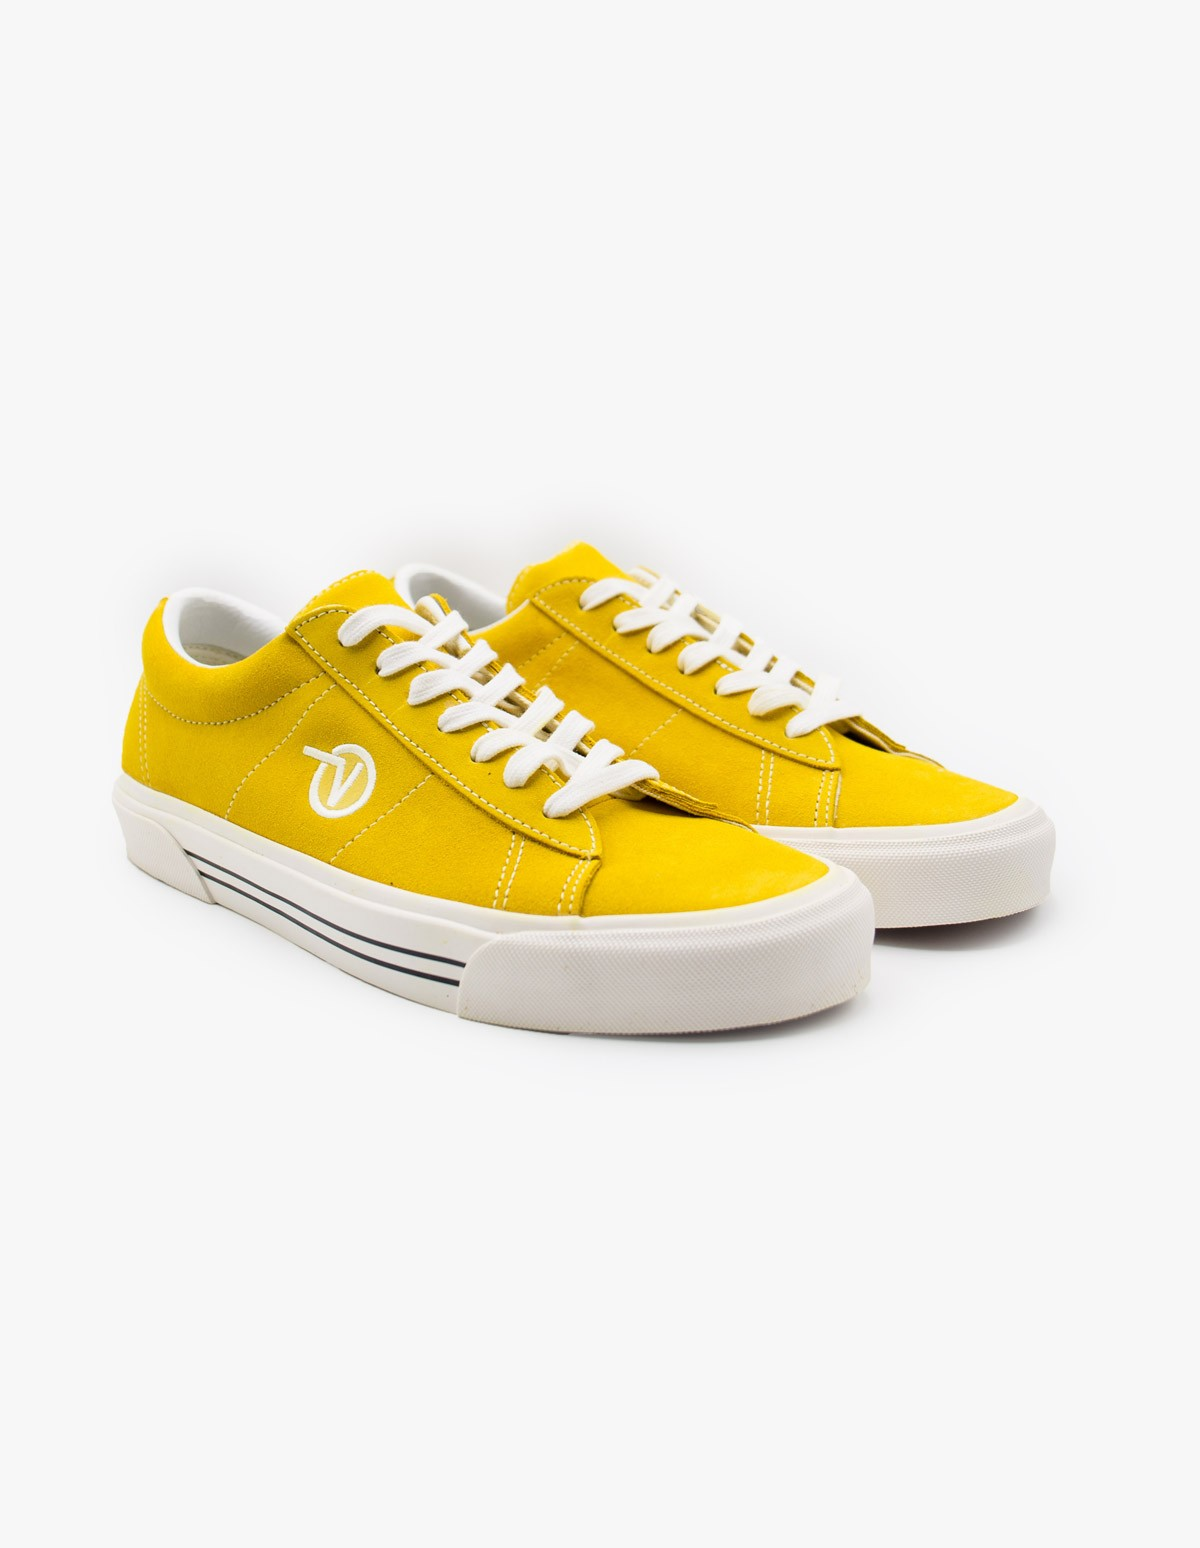 Vans Sid DX Anaheim in Yellow